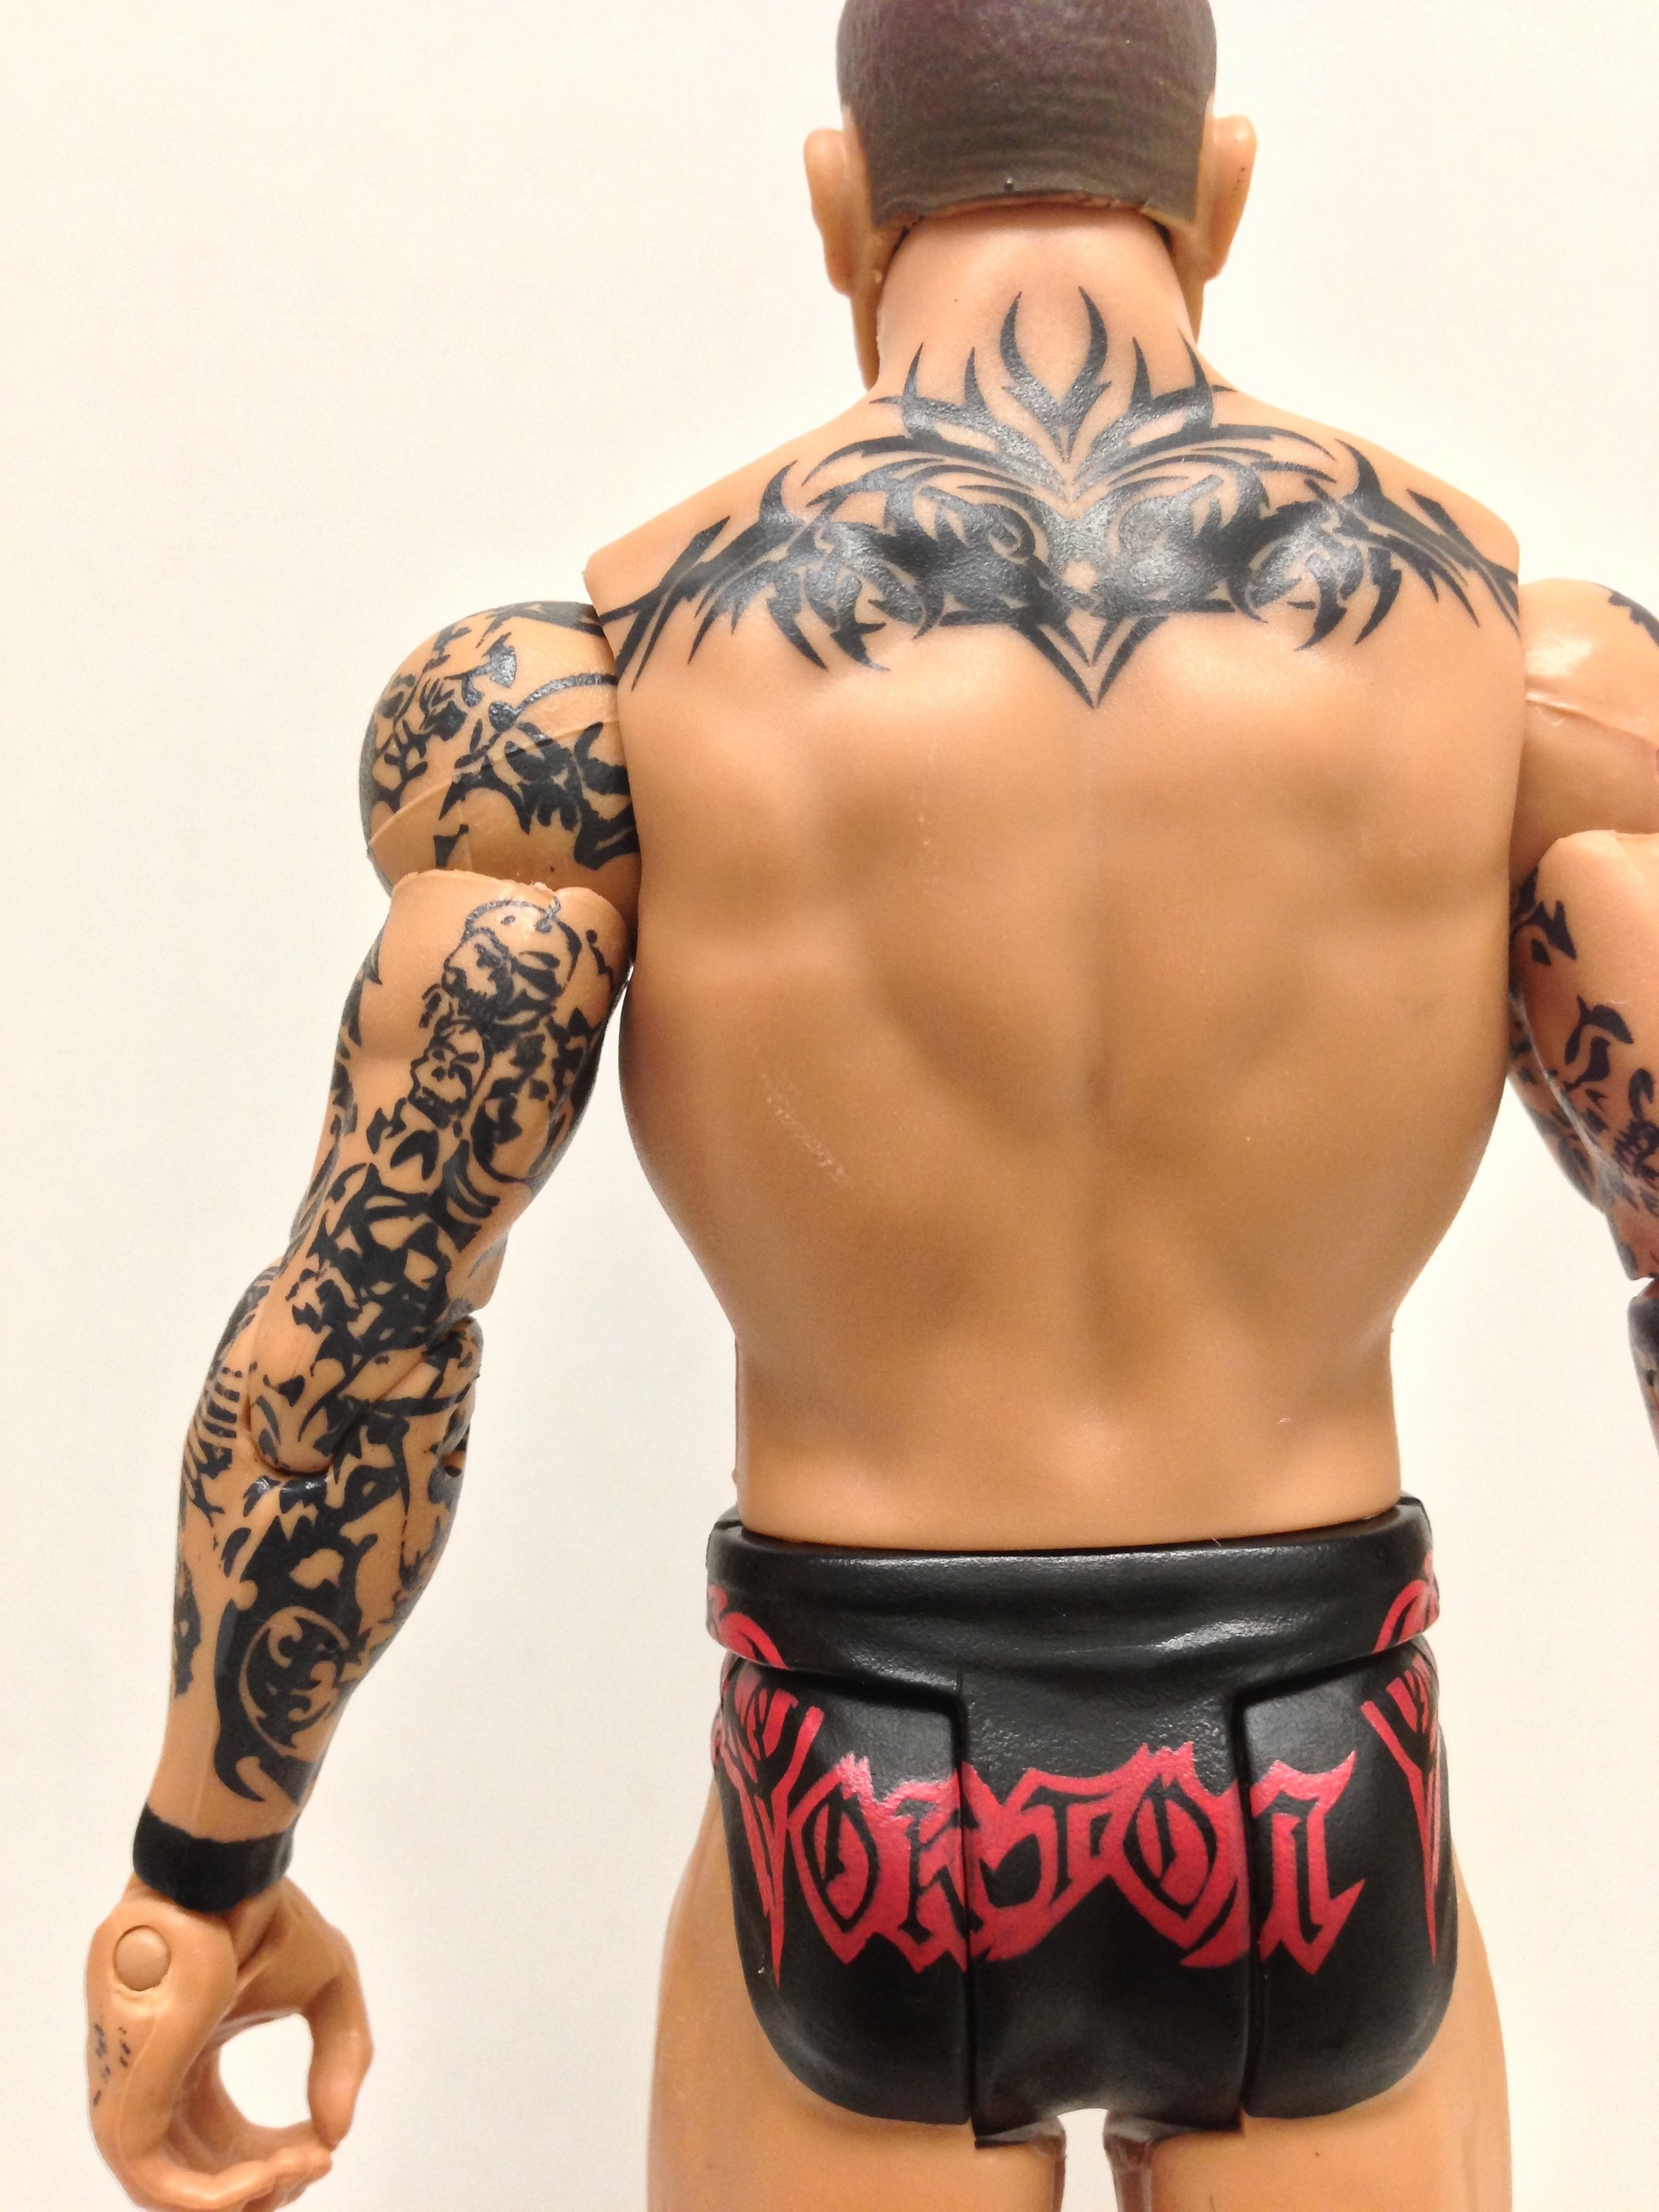 the gallery for gt wwe randy orton new tattoos